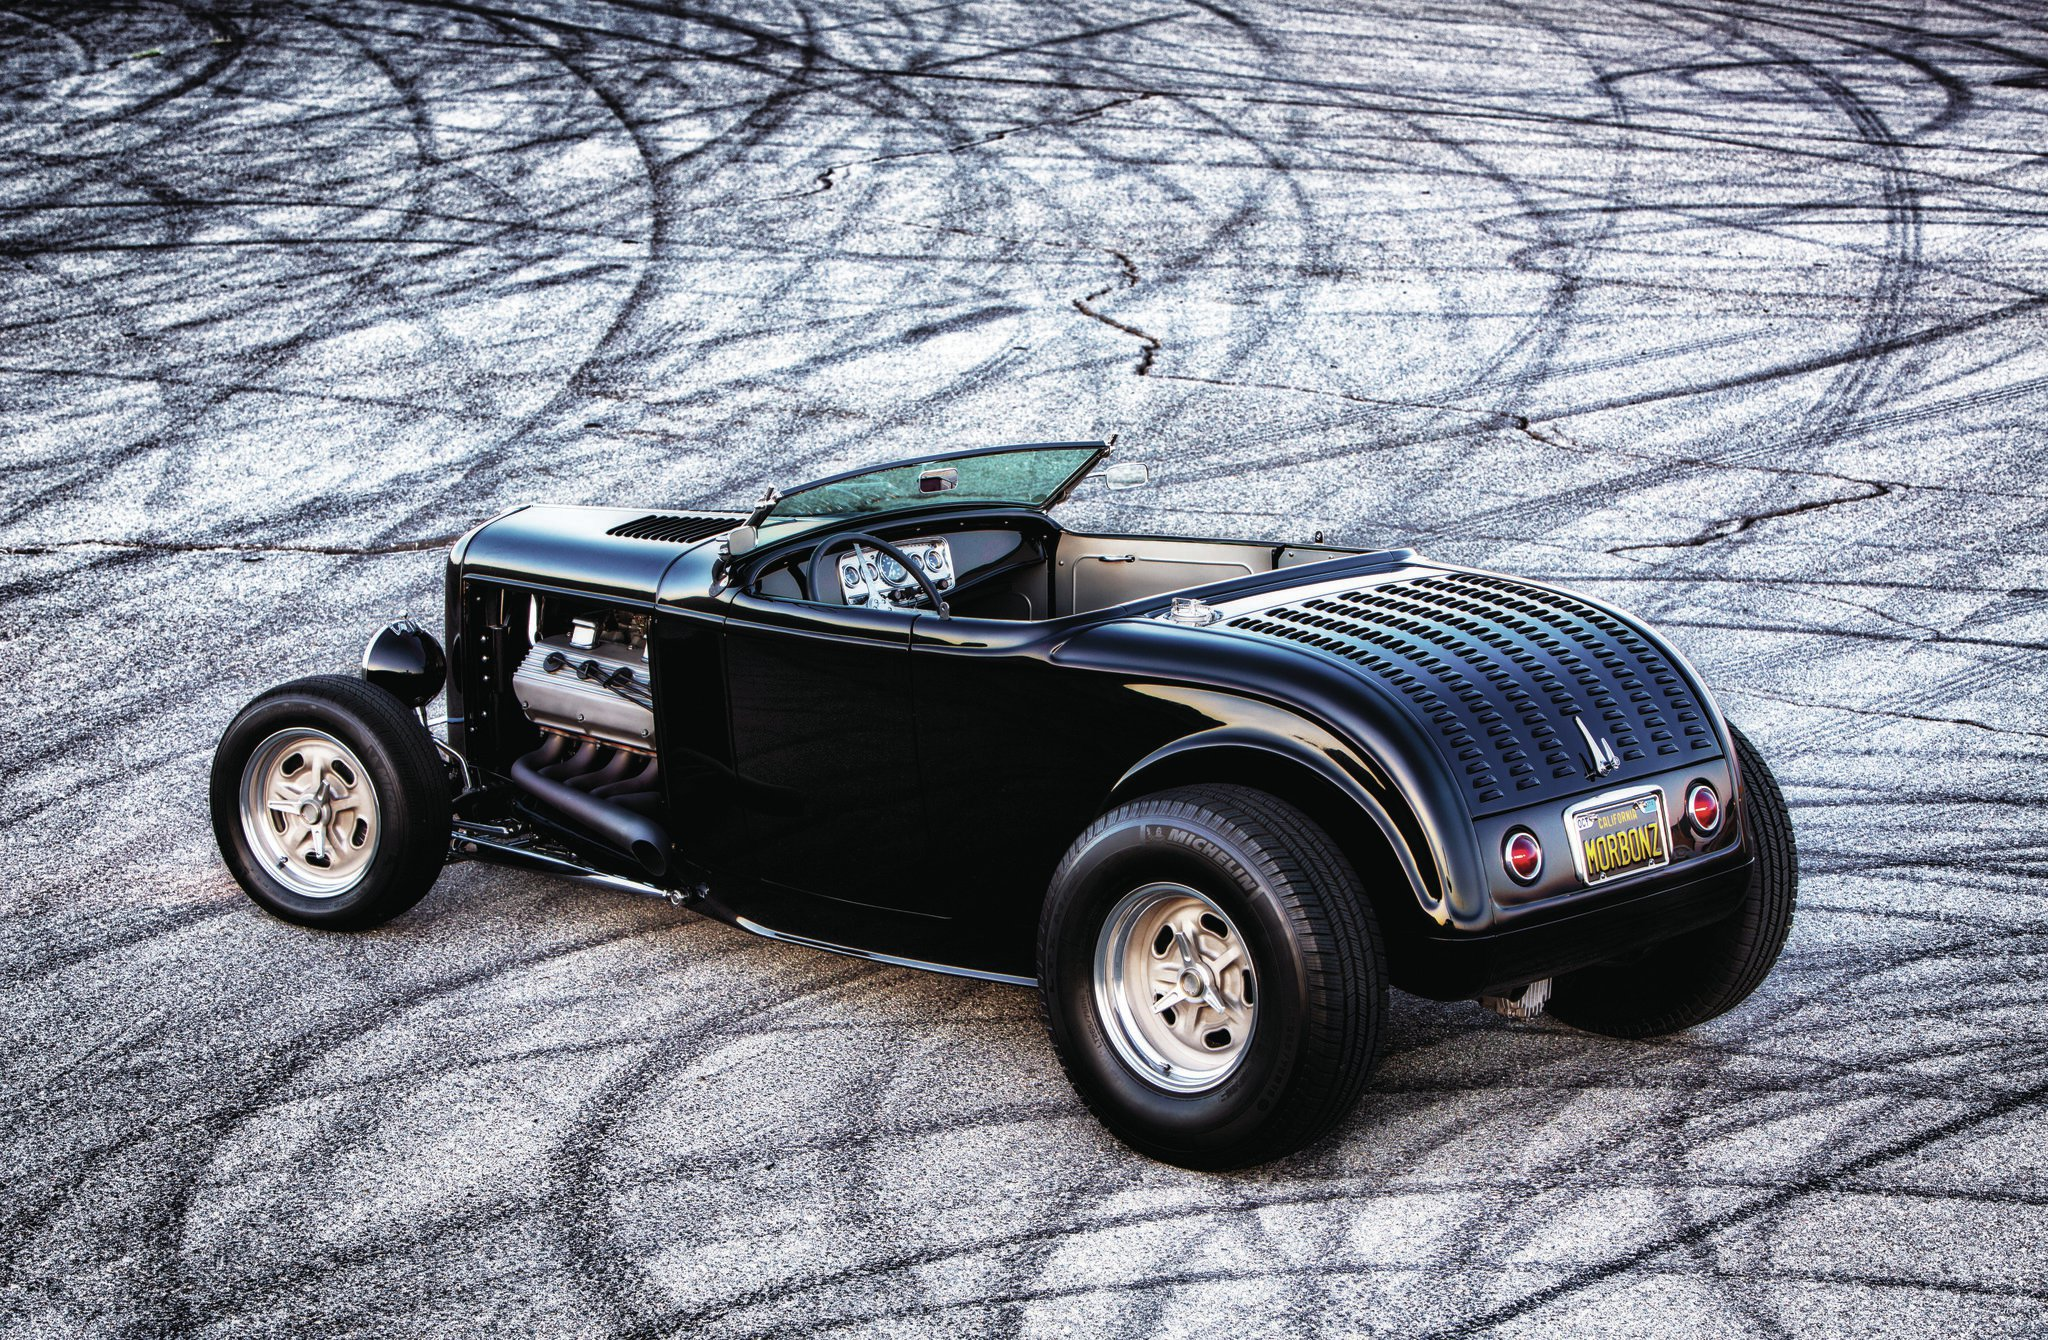 Nothing beats the look of a Deuce highboy roadster, and with a 392ci Hemi under the hood, you've got the best of both classic hot rod styling and classic American horsepower. The car's wheelbase has been stretched 3 inches to help accommodate the big lump of Hemi.